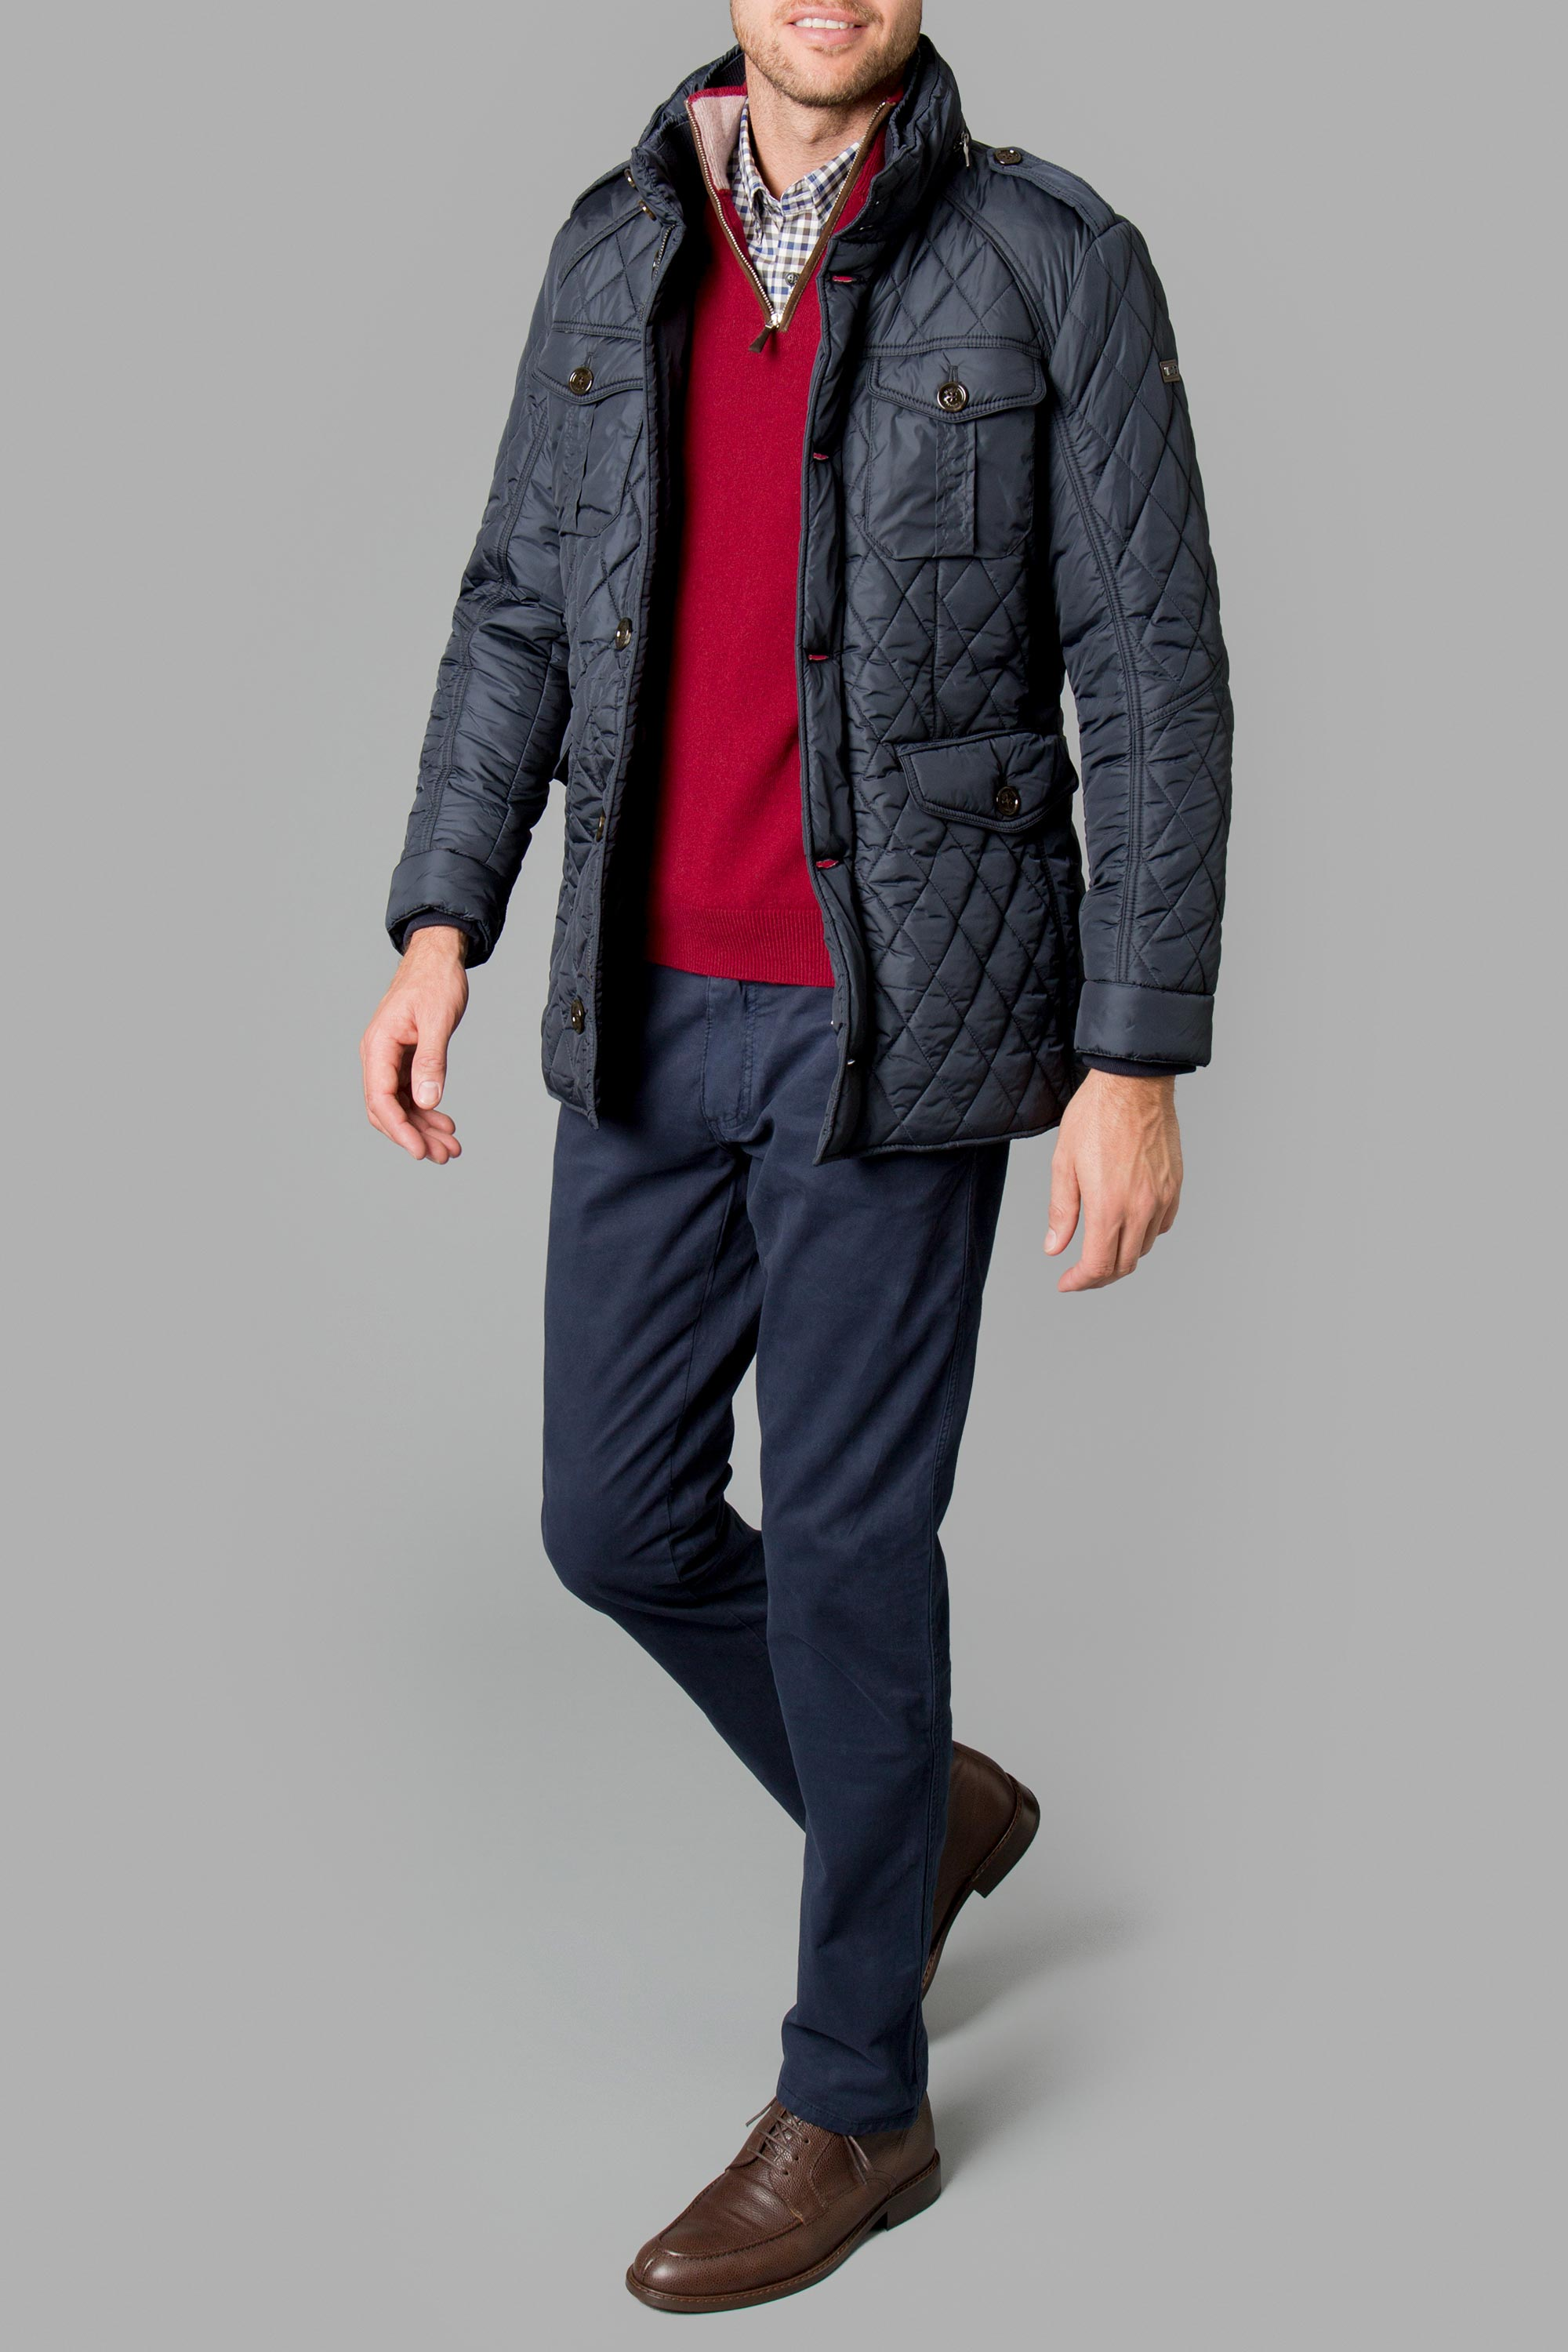 hacket jackets - you pay more but get the style and detailing inside